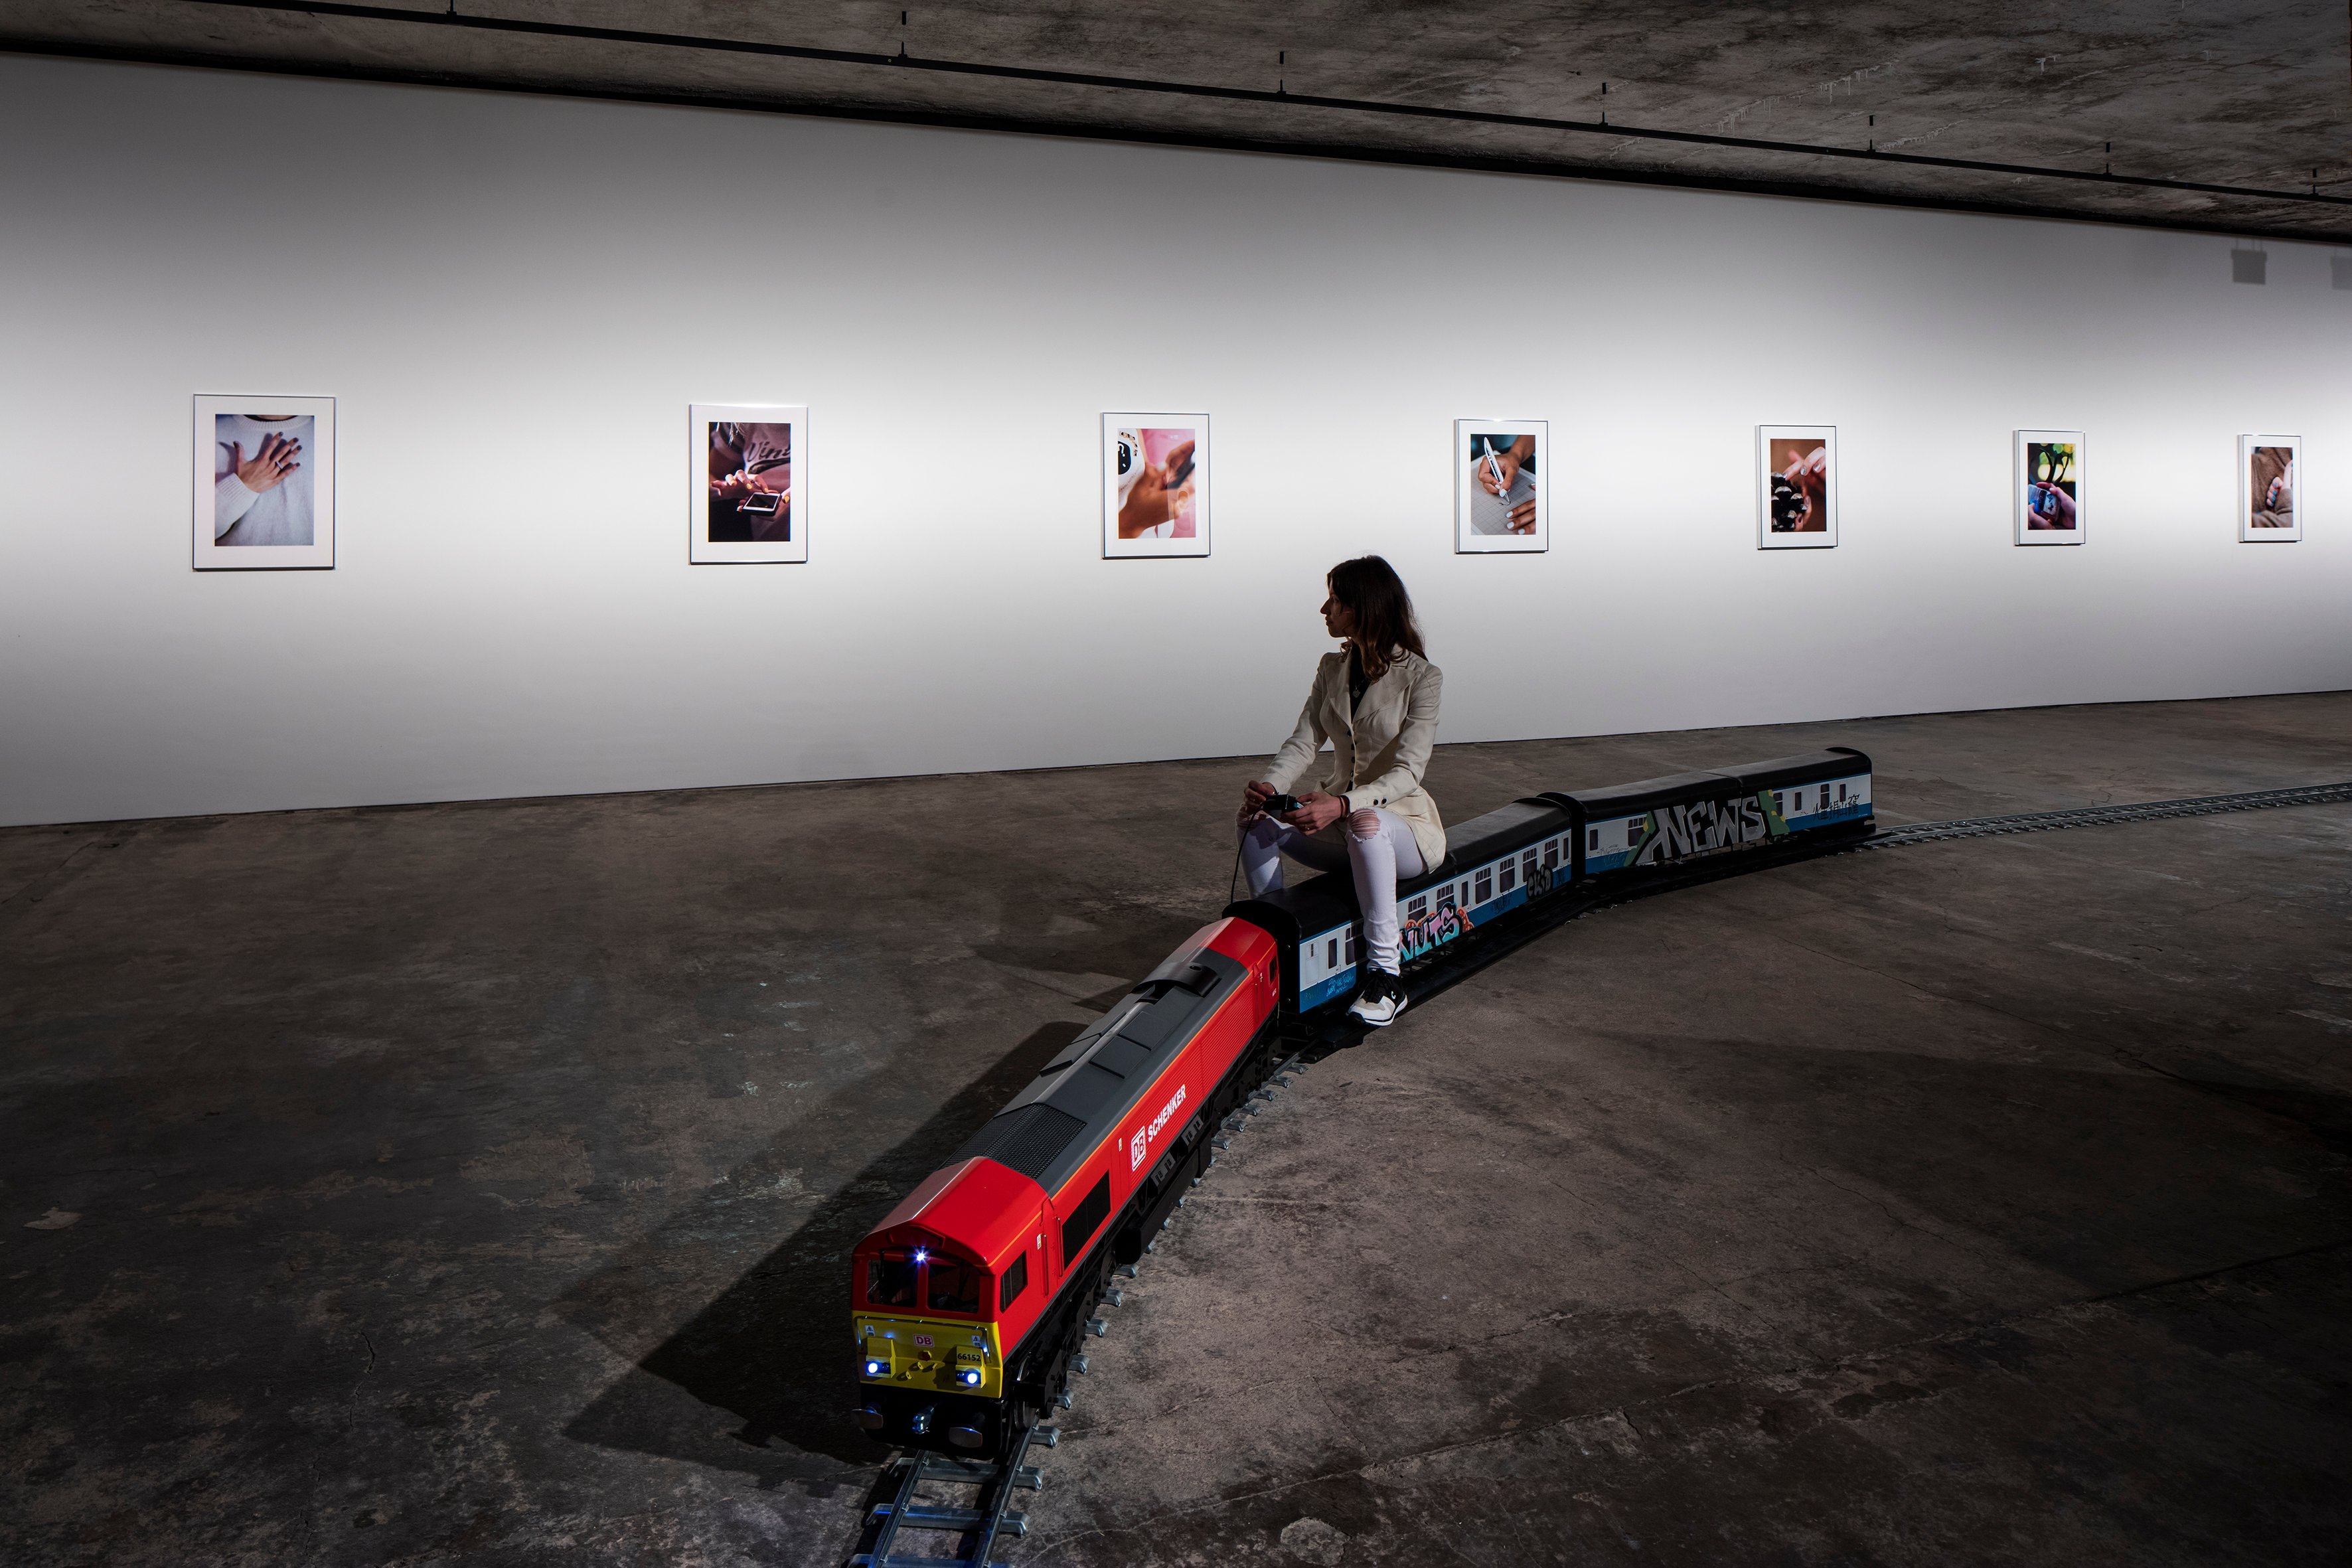 Image: Josephine Pryde, Exhibition view. (Foregound) The New Media Express, 2014. Vinyl Electrical components, batteries, powder-coated steel, paint, MDF, vinyl. Courtesy Josephine Pryde; Galerie Neu, Berlin. (Background) Hands